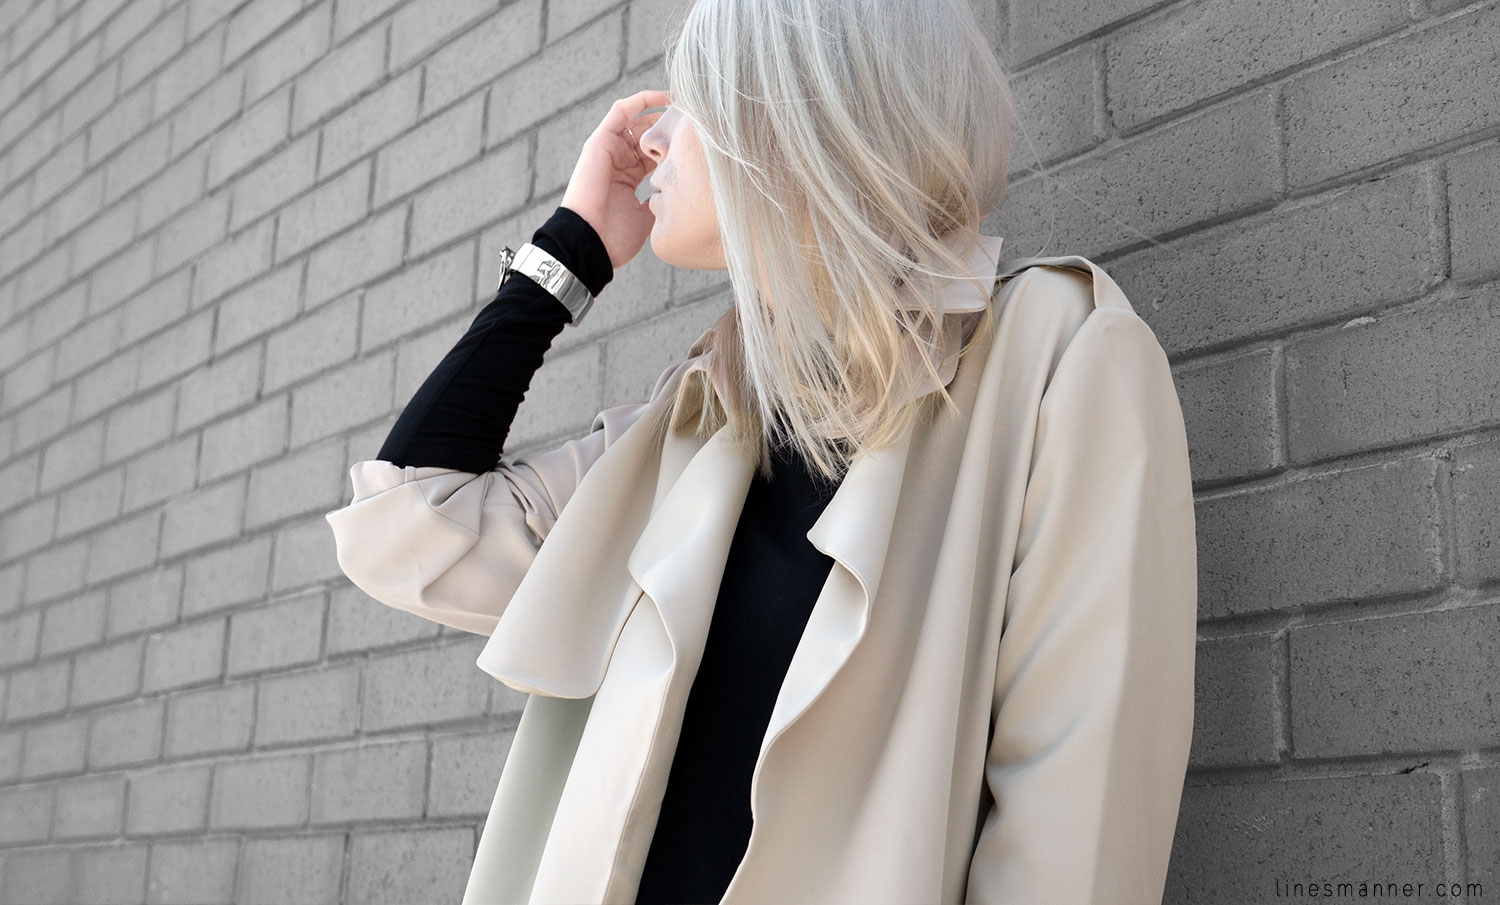 Lines-Manner-Trench-Minimal-Outfits-Fashion-Essentials-Classics-Timeless-Versatile-Details-Hues-Nonchalance-Elegance-Casual-Effortless-8